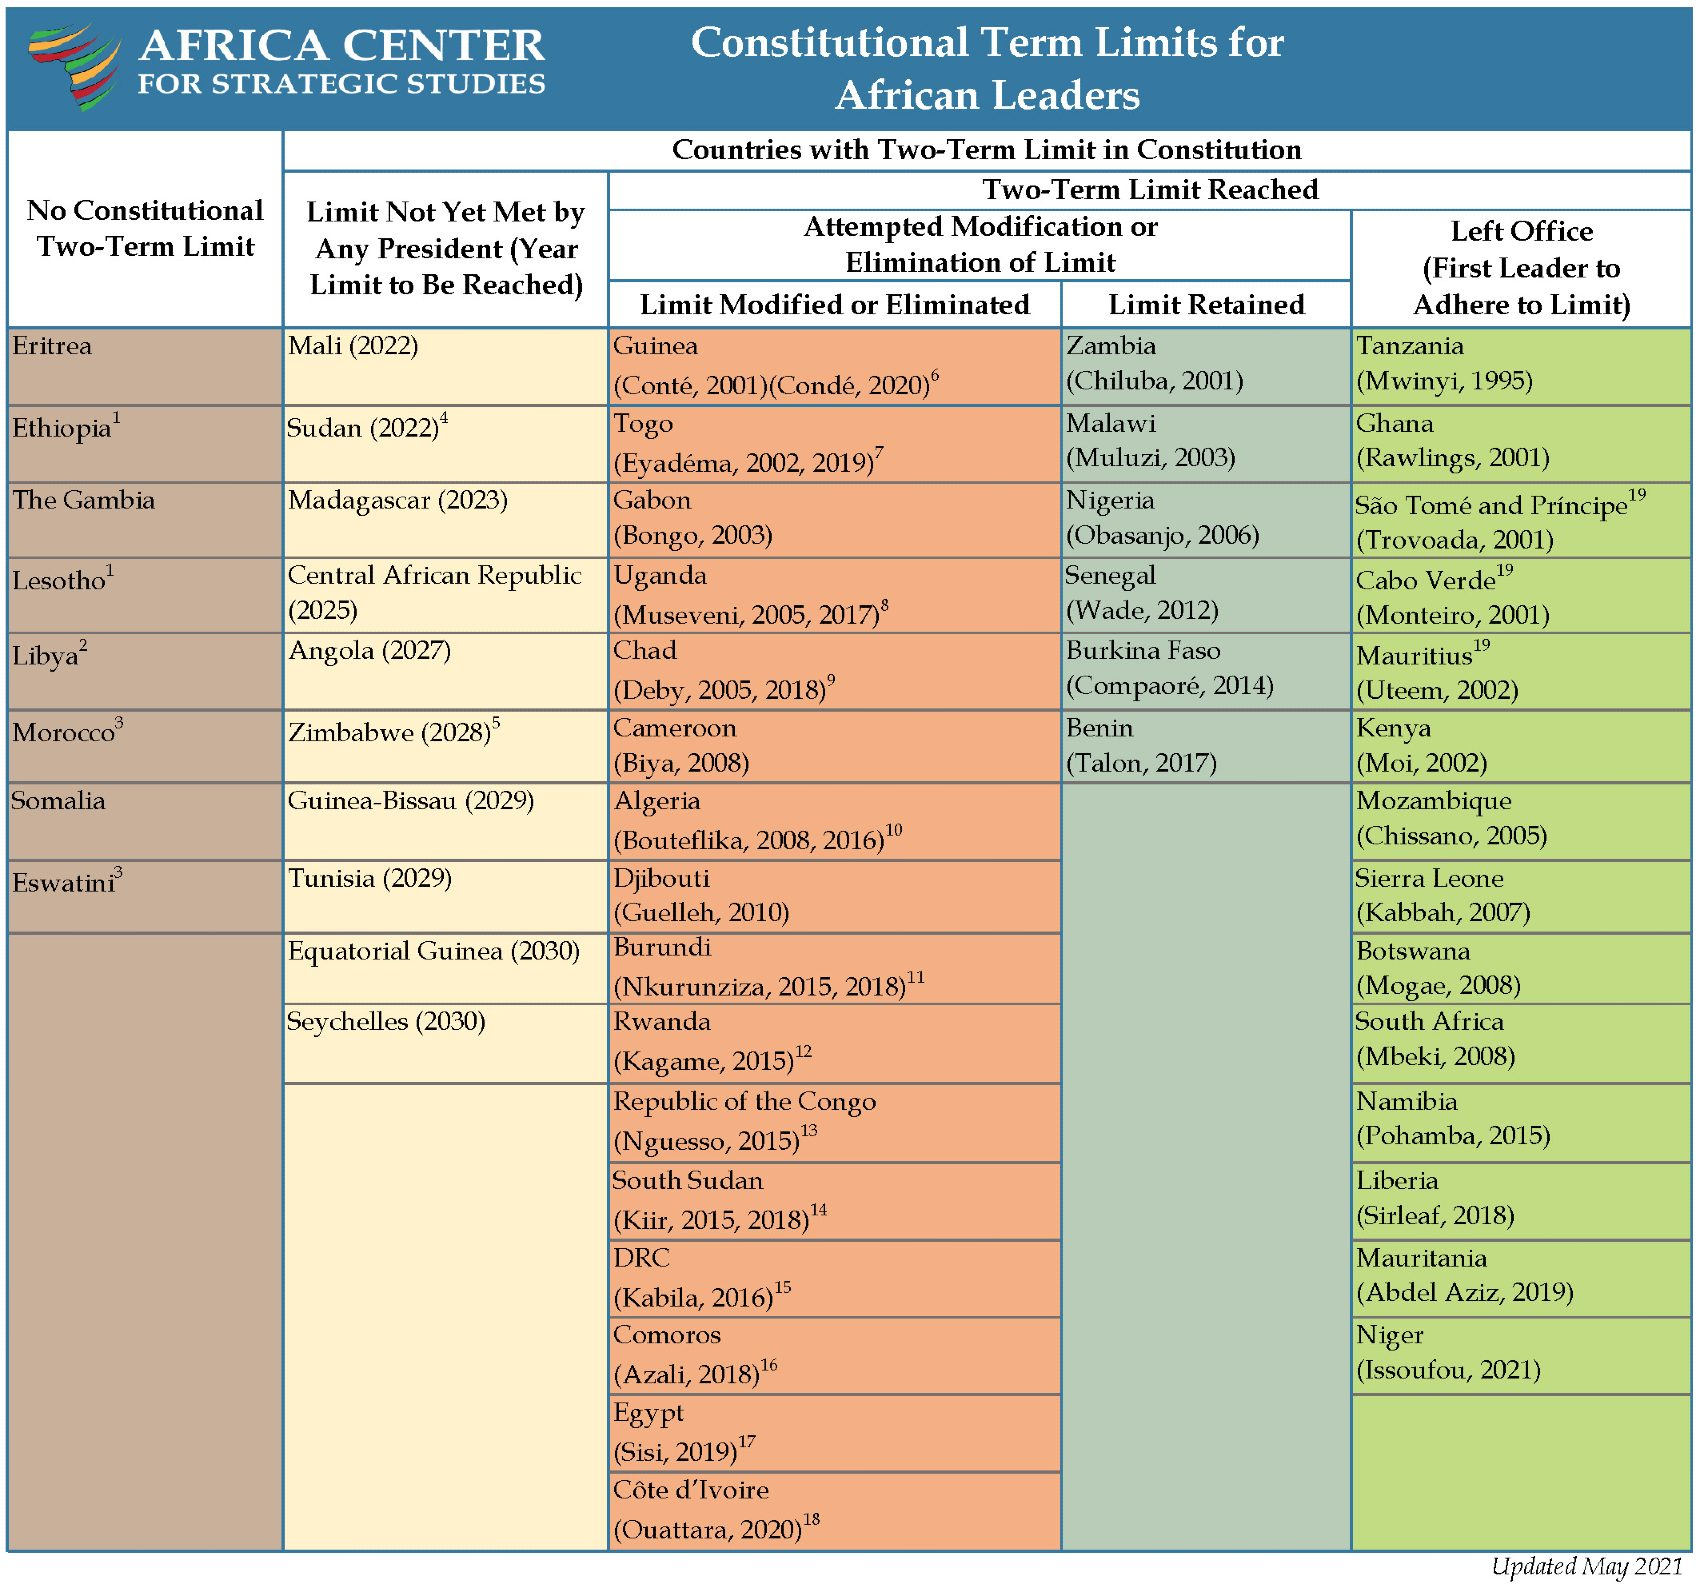 Constitutional Term Limits for Africa Leaders